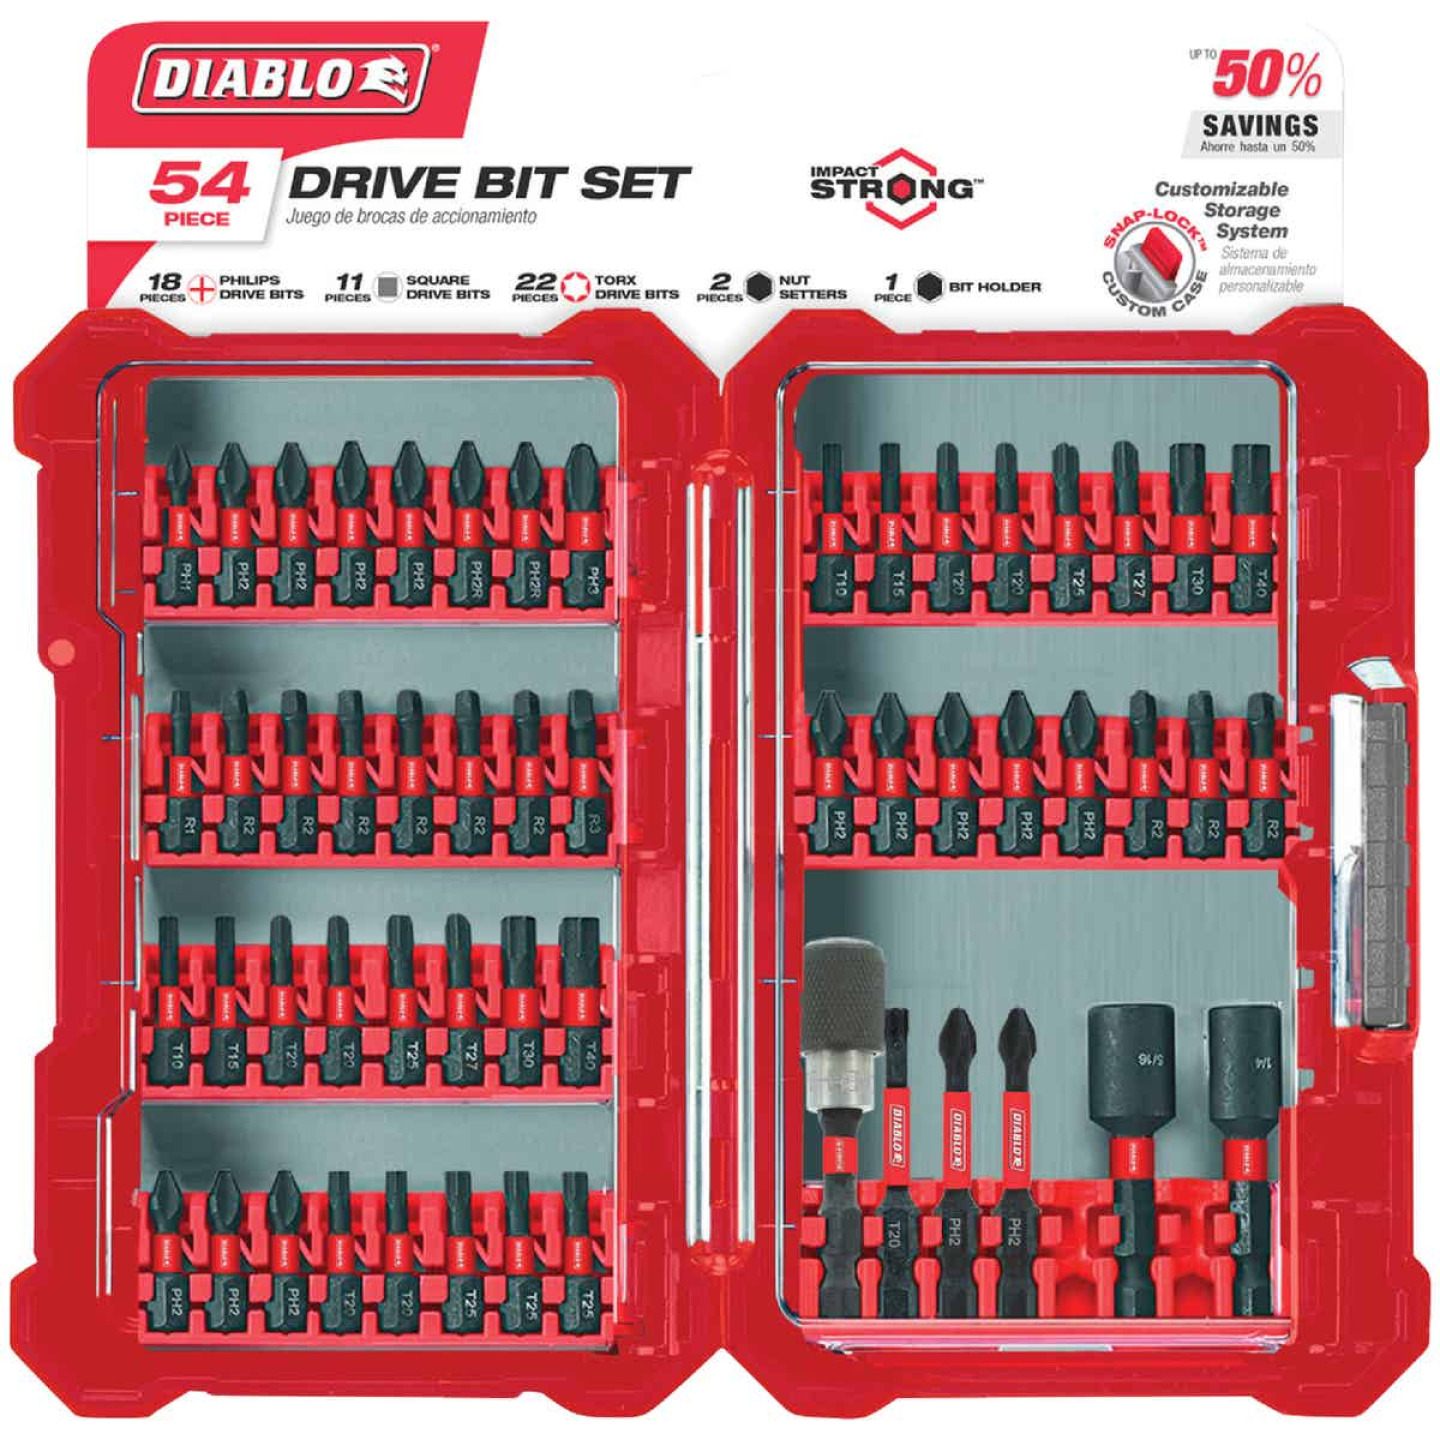 Diablo 54-Piece Impact Screwdriver Bit Set Image 1